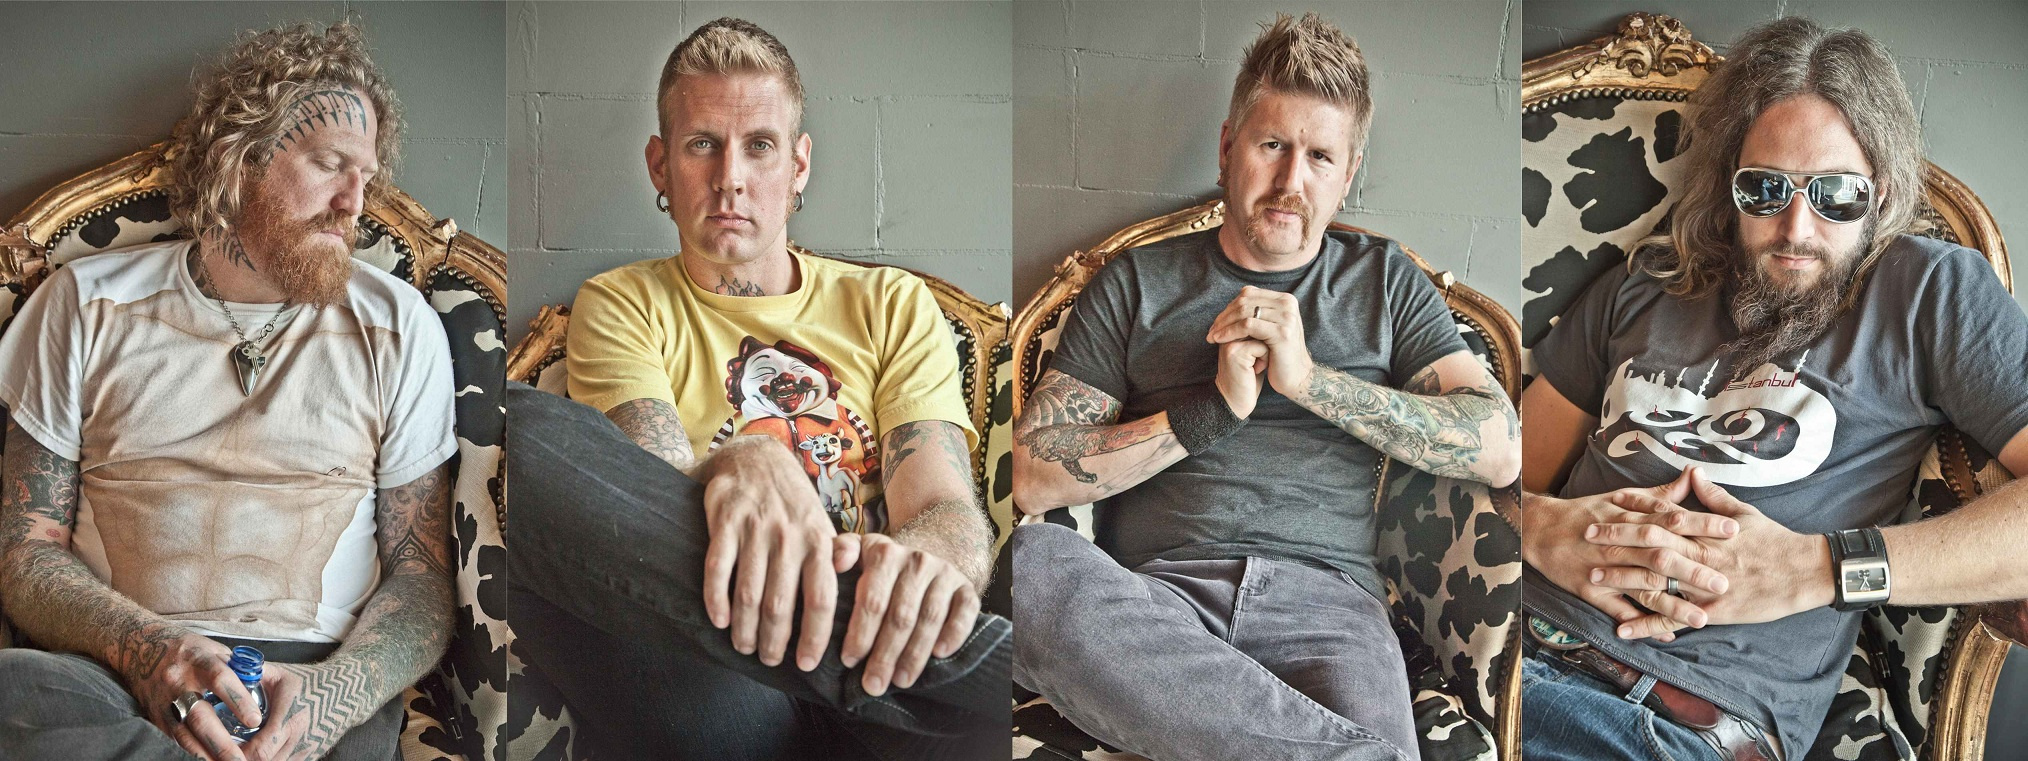 MASTODON Release 'Dry Bone Valley' – New Single and Video Clip